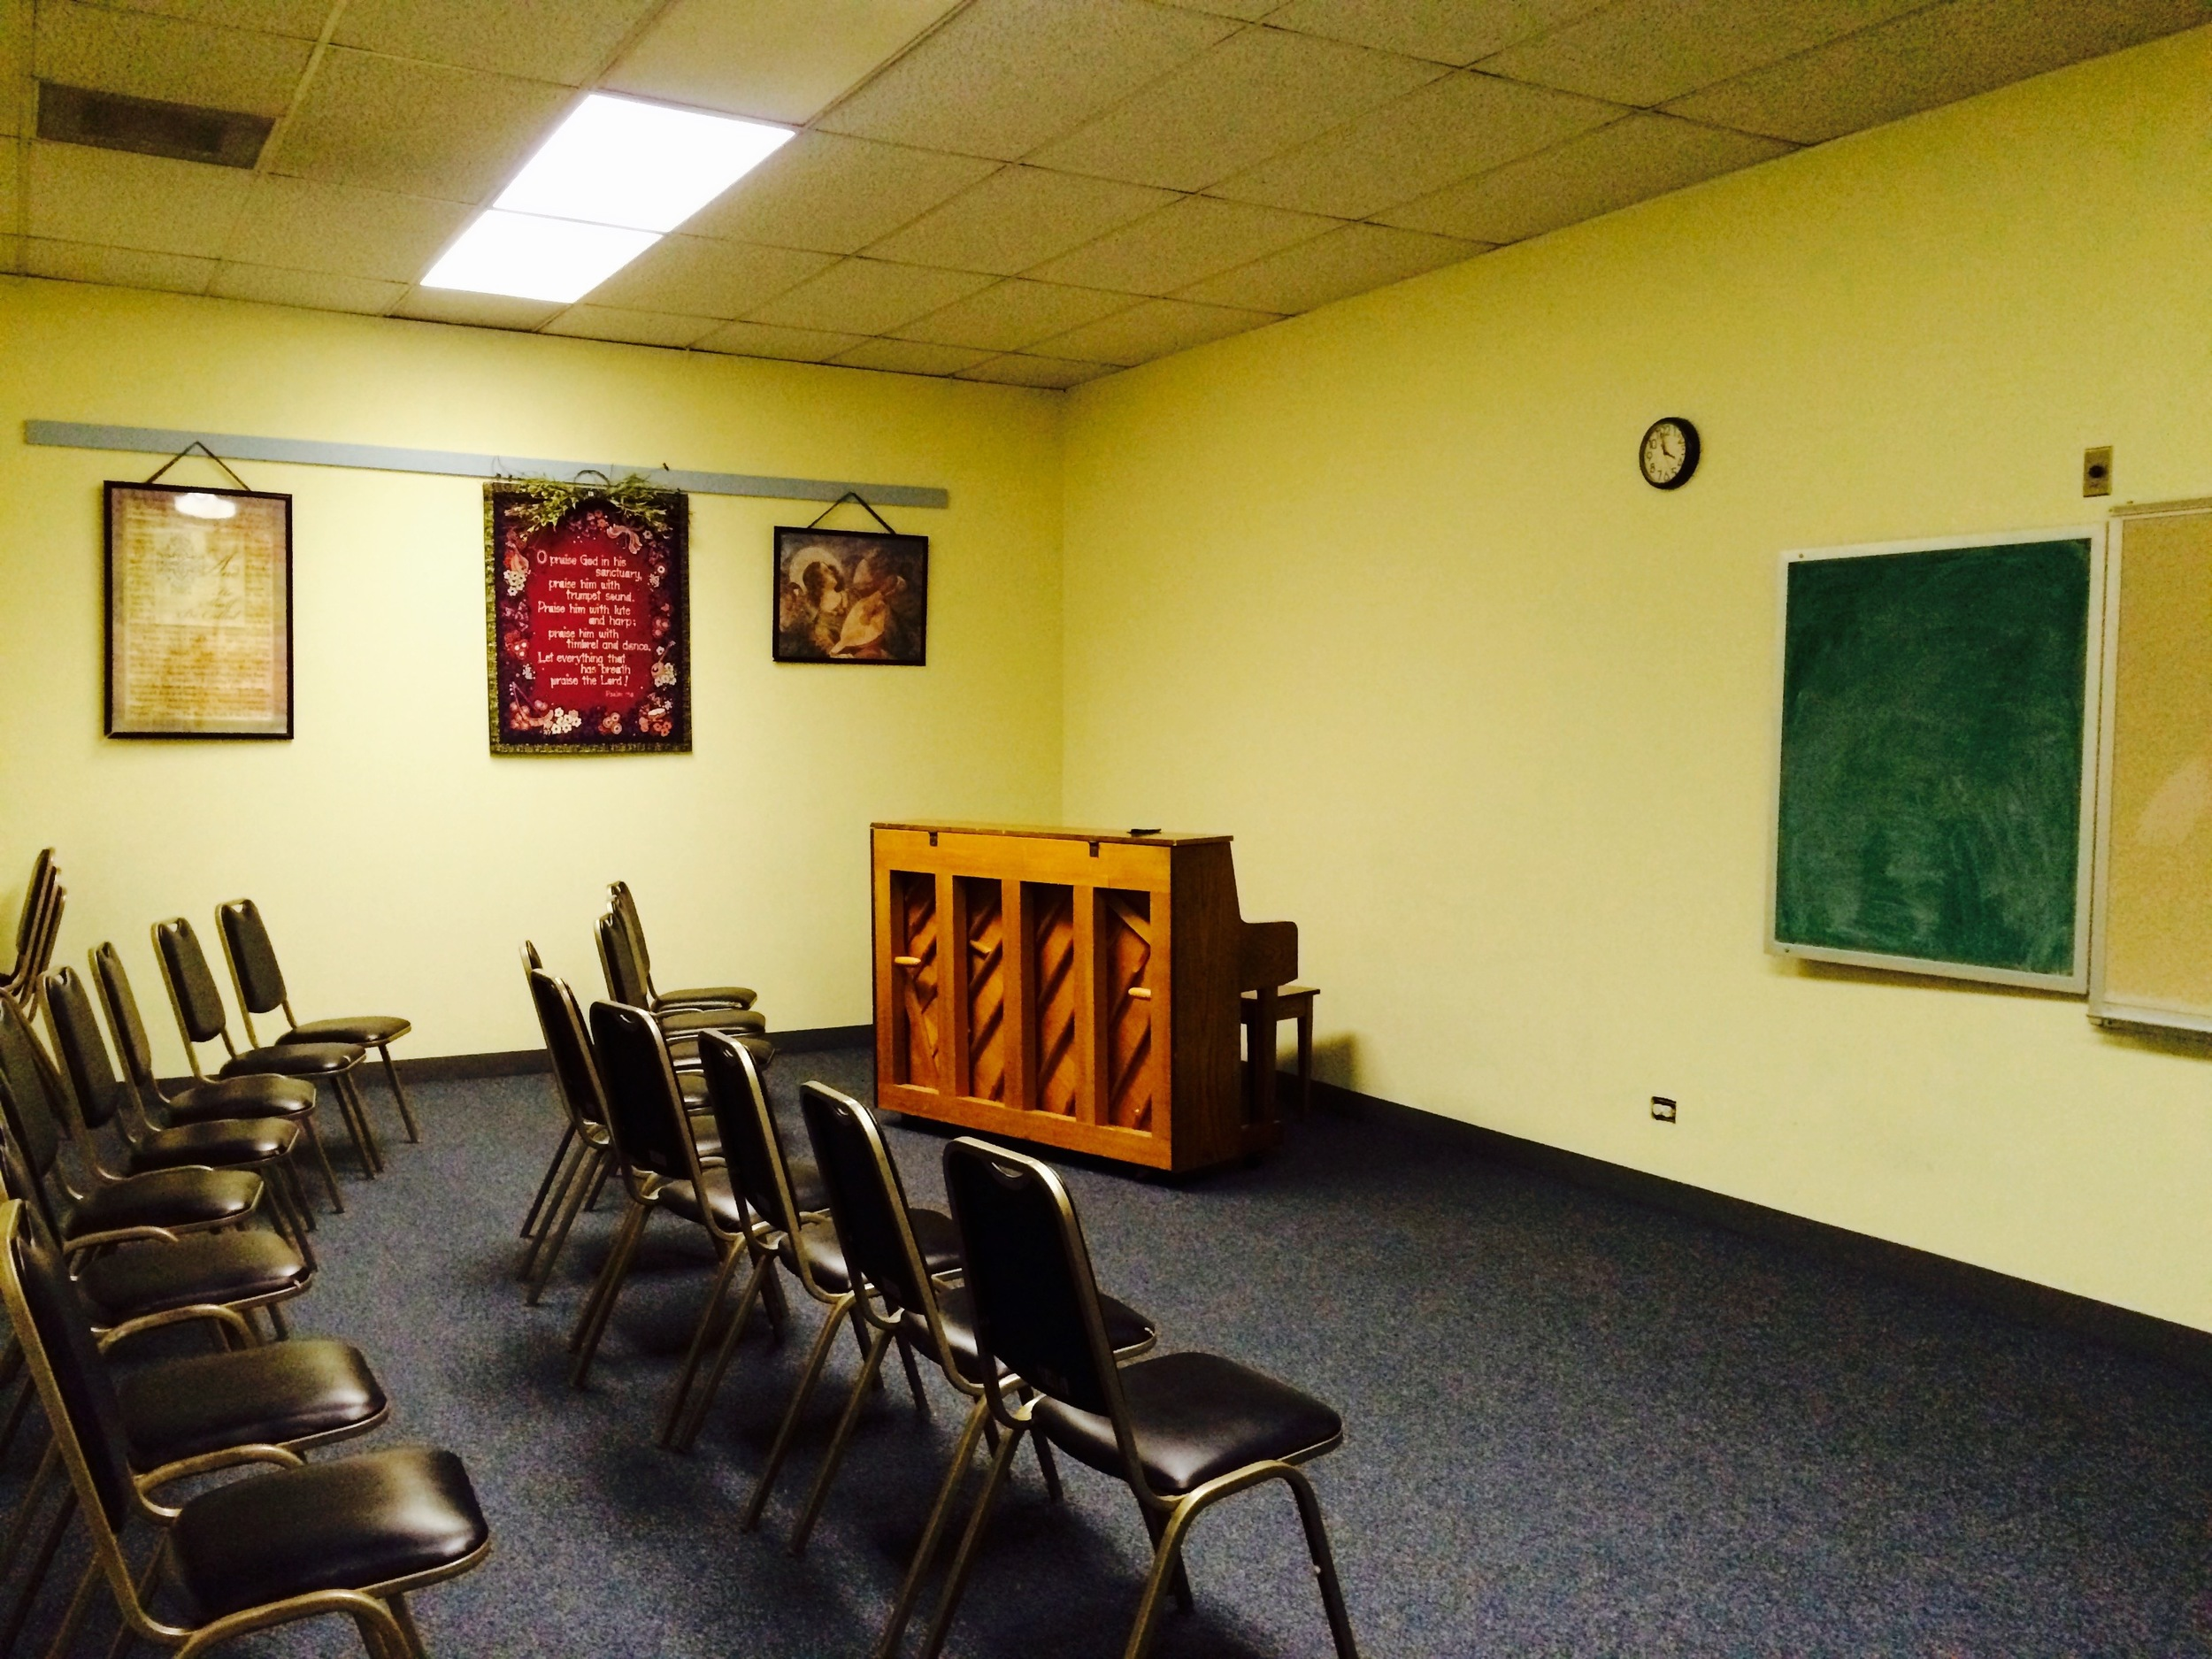 The music room has a piano, chairs, chalkboard, and usually folded-up tables in case you need to have a meeting. This is where the choir rehearses on Sundays, so you'll find lots of sheet music here too!